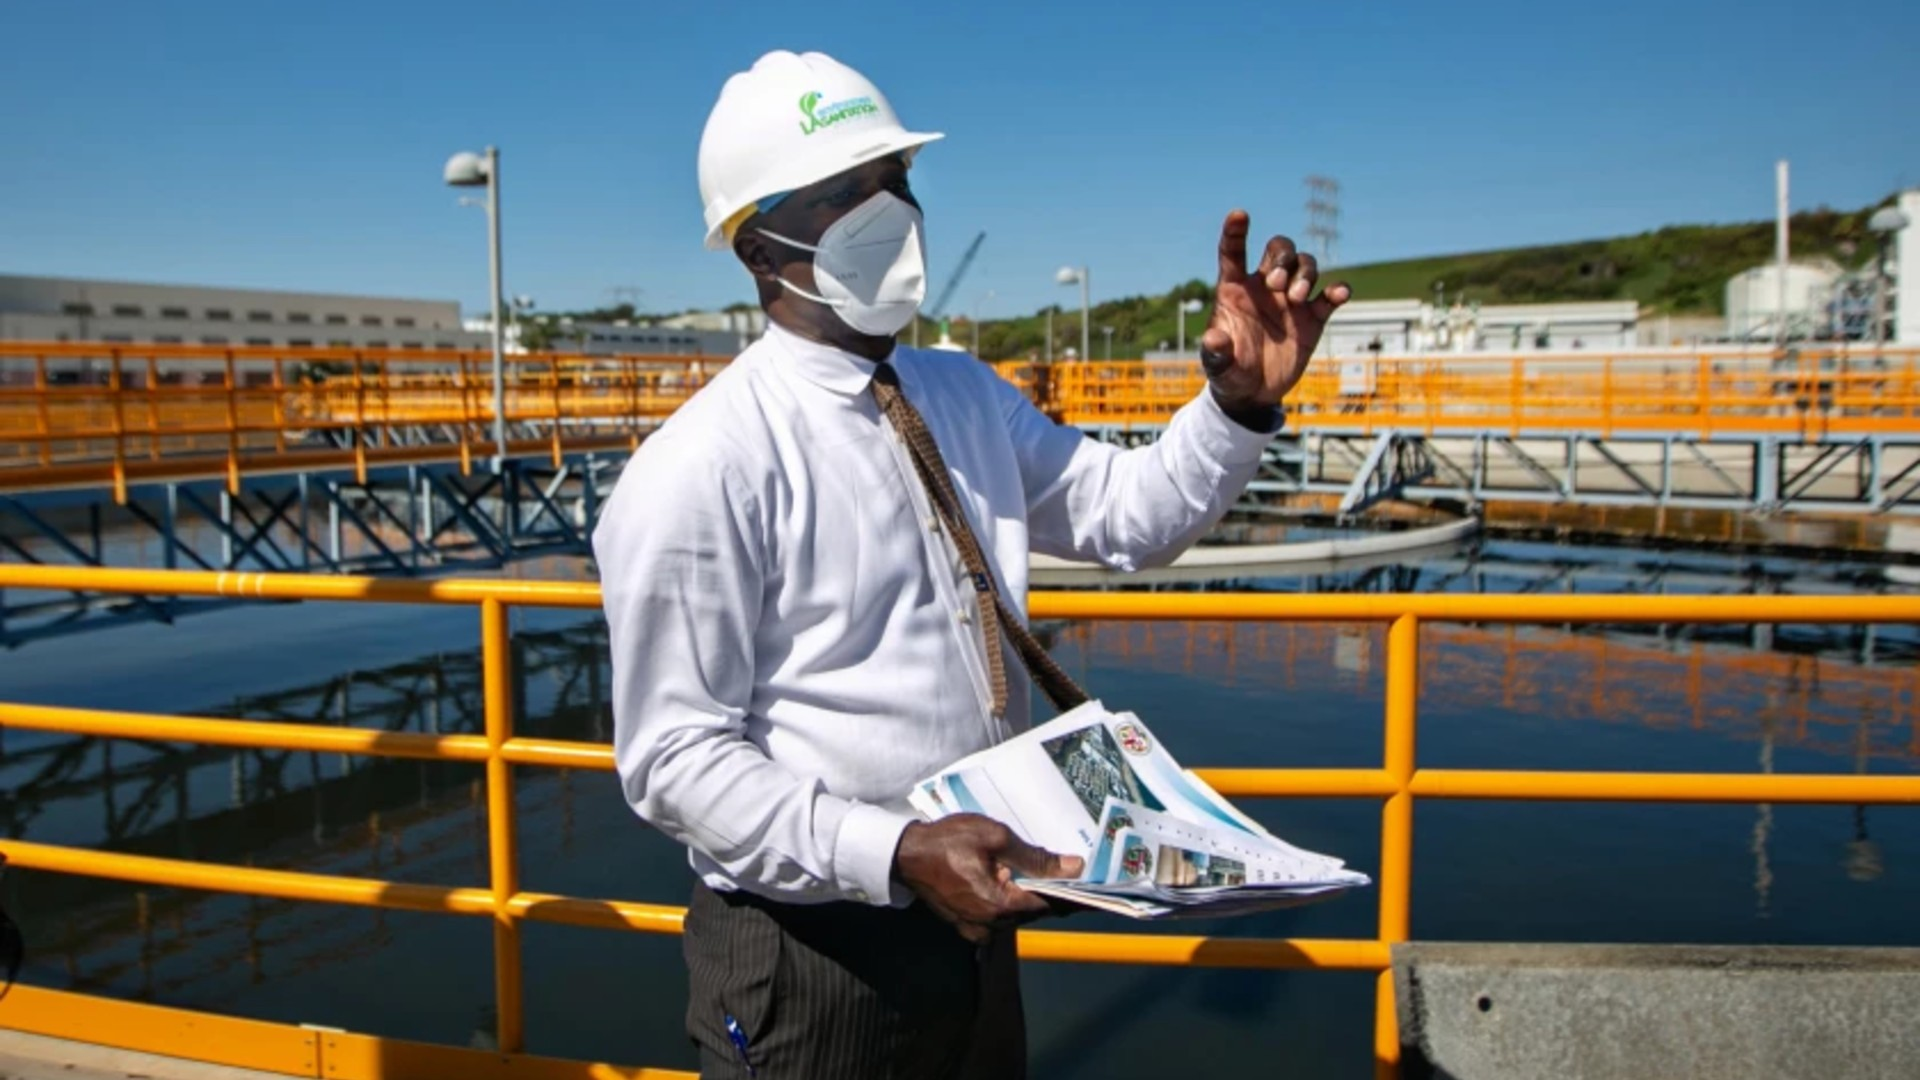 Timeyin Dafeta, executive manager of the Hyperion Water Reclamation Plant, speaks to reporters recently during a tour of the plant. (Jason Armond / Los Angeles Times)